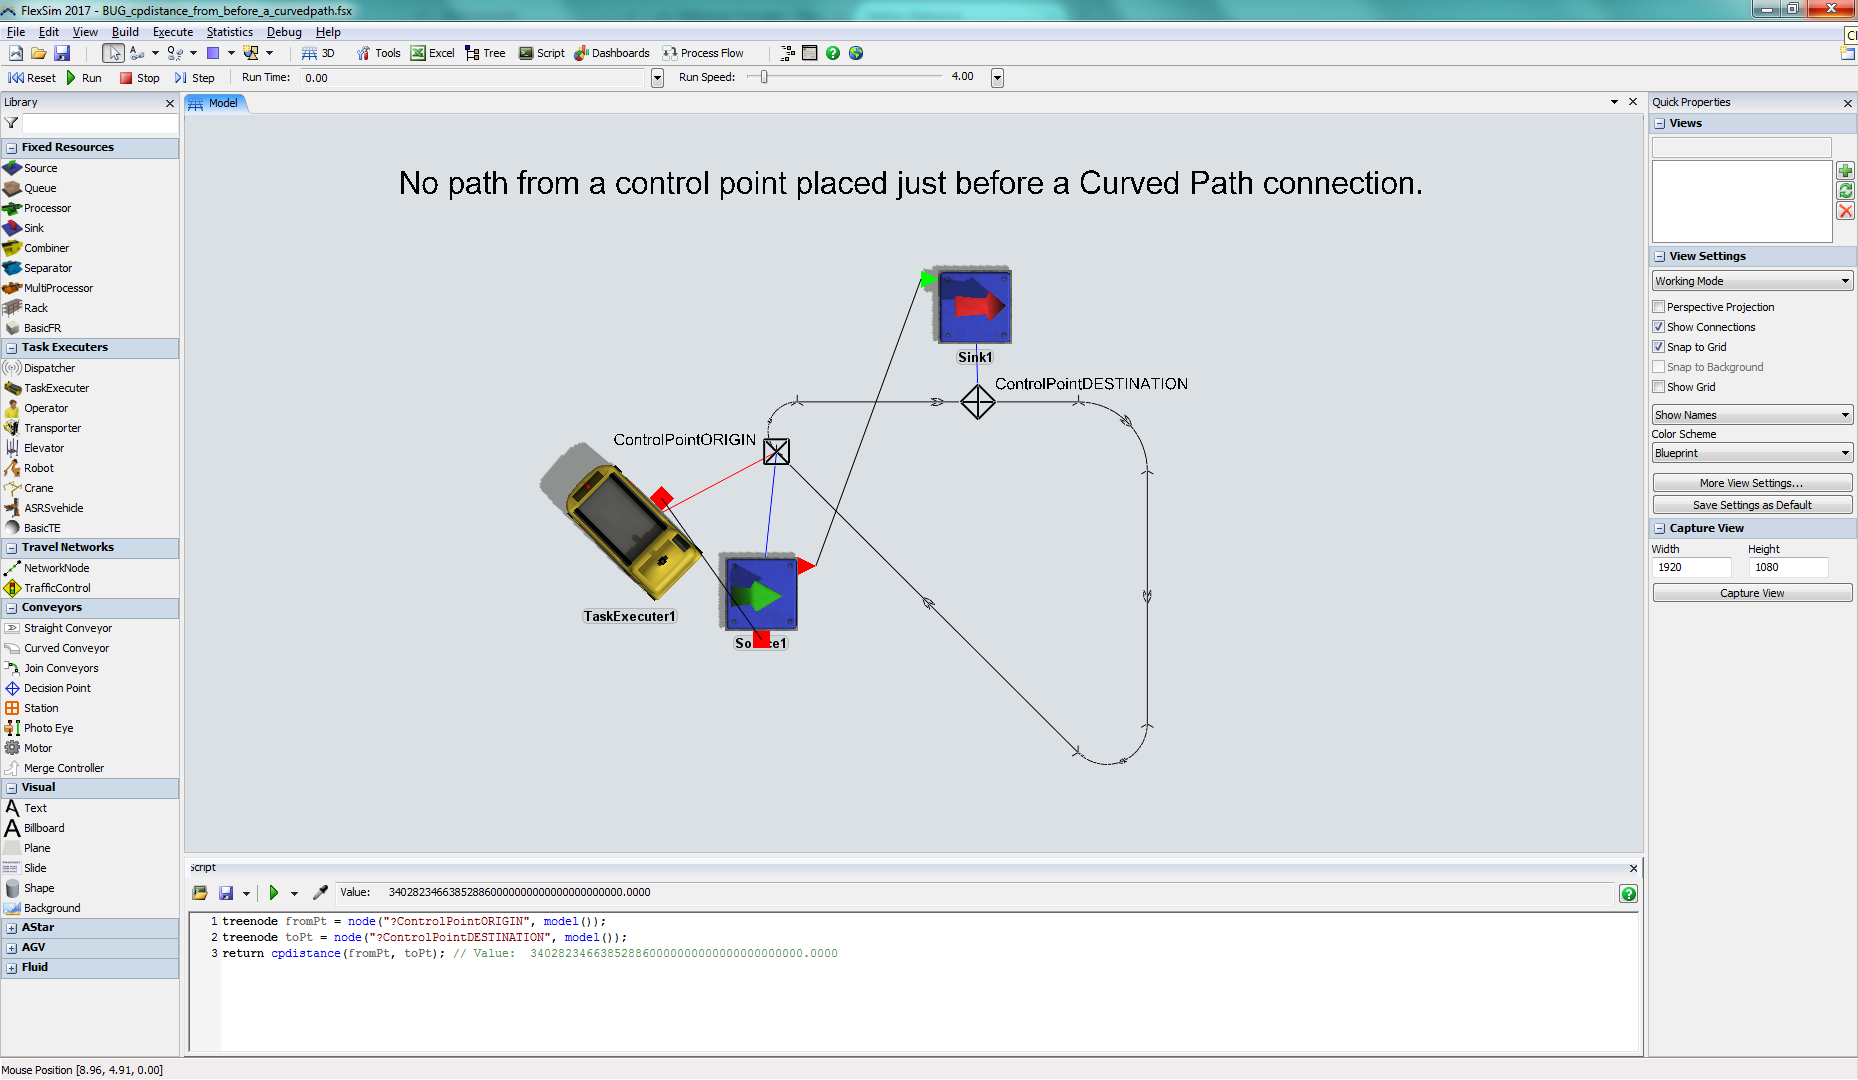 No valid path from a control point placed just before a